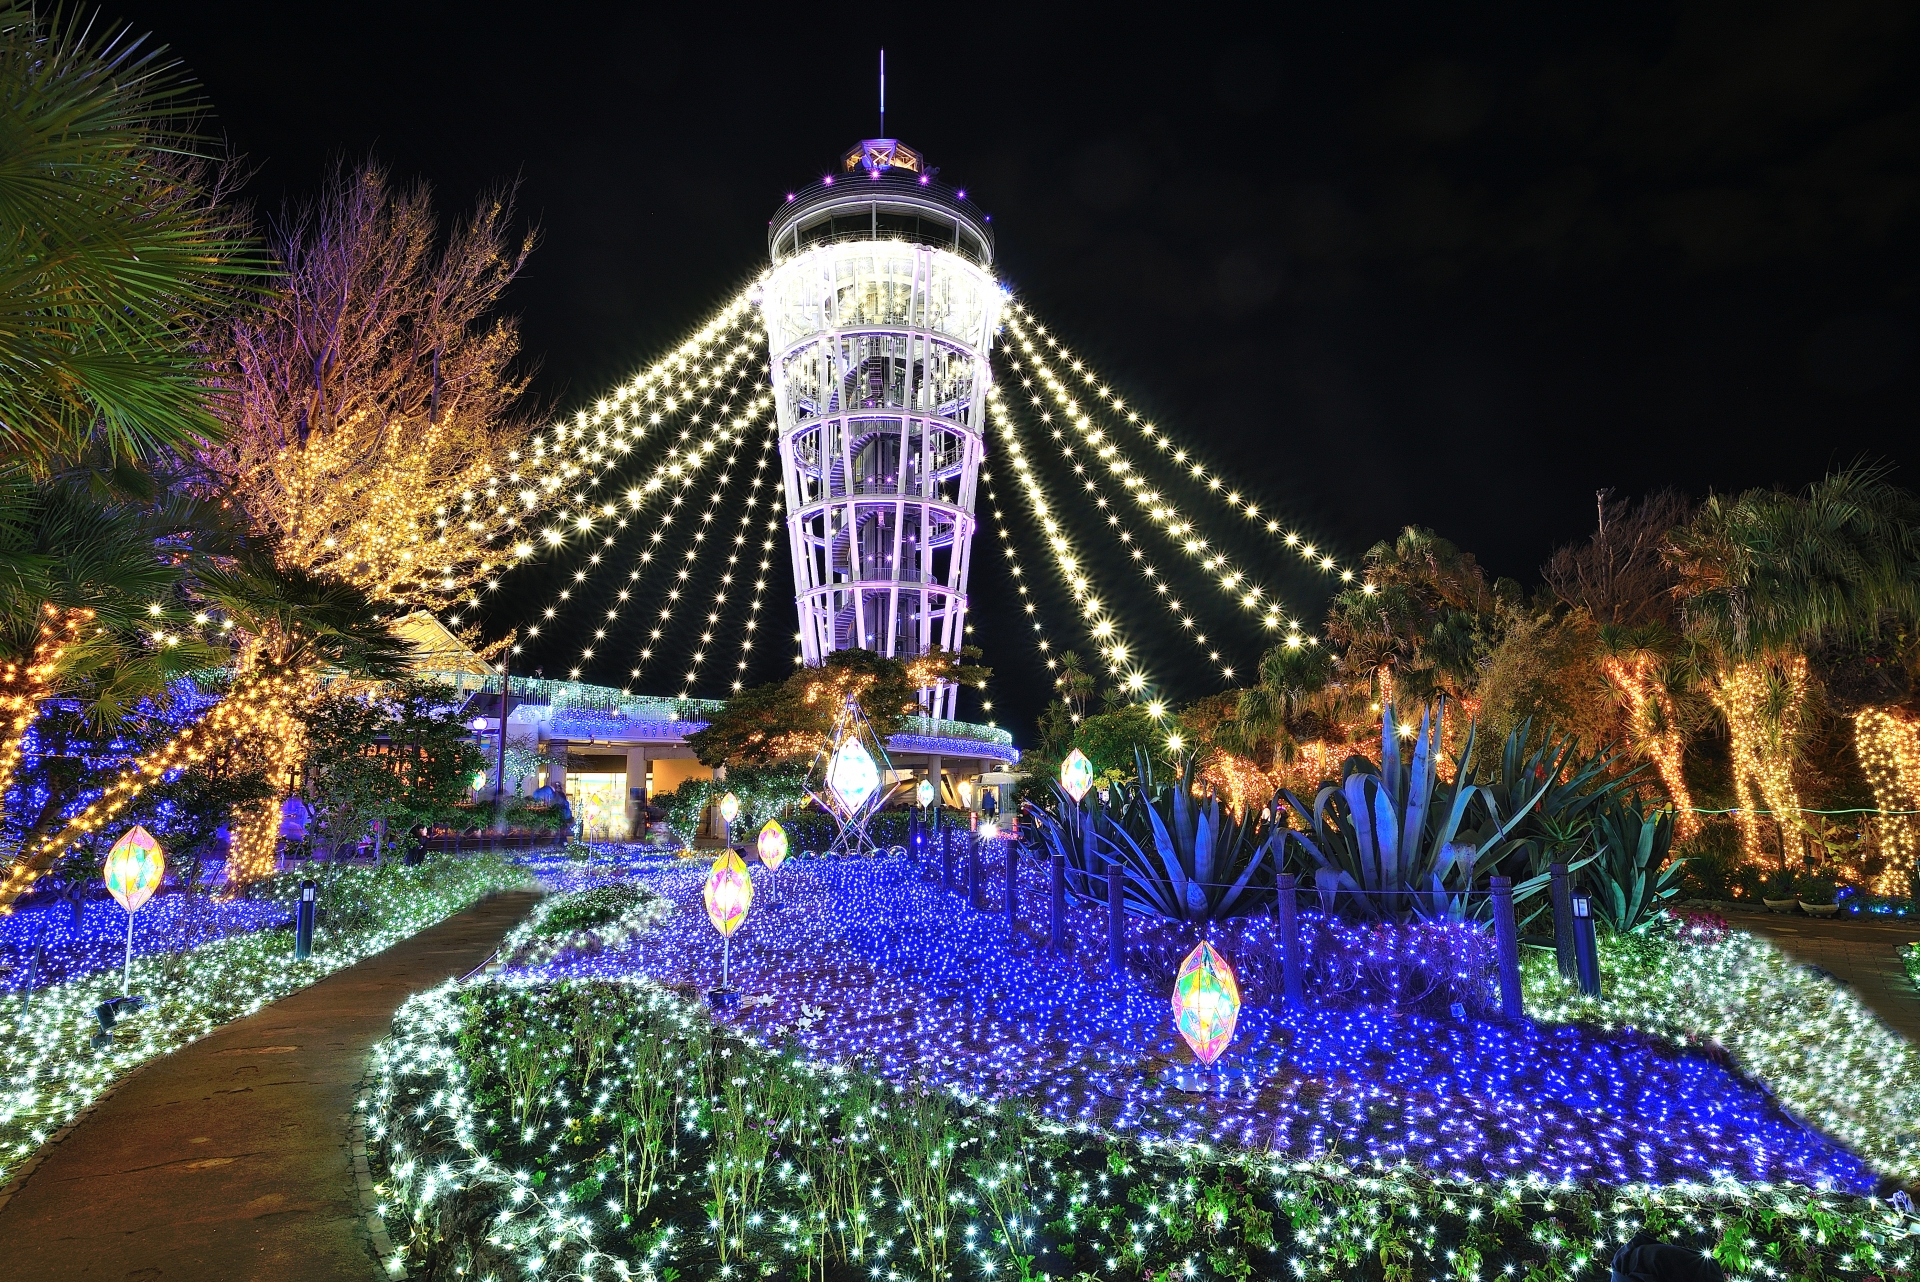 Enoshima Winter Illumination: the Jewel of Shonan 2019–2020